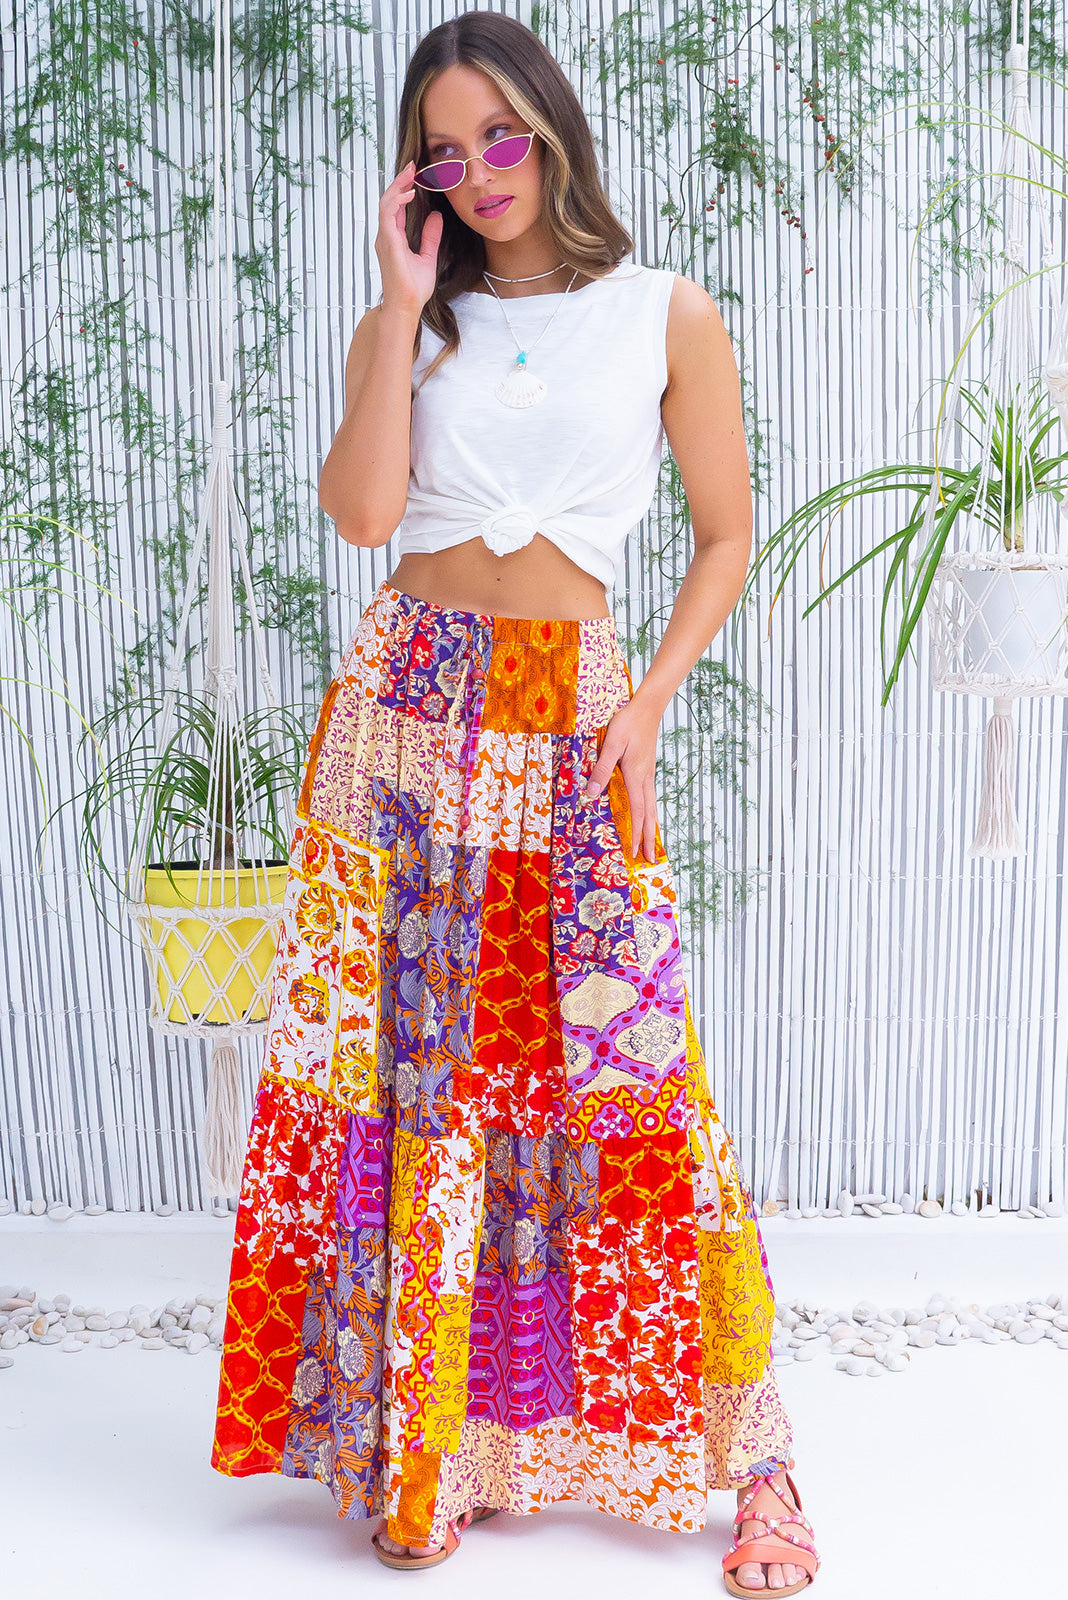 The Valencia Golden Hour Maxi Skirt featurs elasticated waistband with decorative tie, comfortable slip-on style, tiered for fullness, side pockets and cotton, viscose blended fabric in vibrant purple, pink, yellow and orange patchwork print.